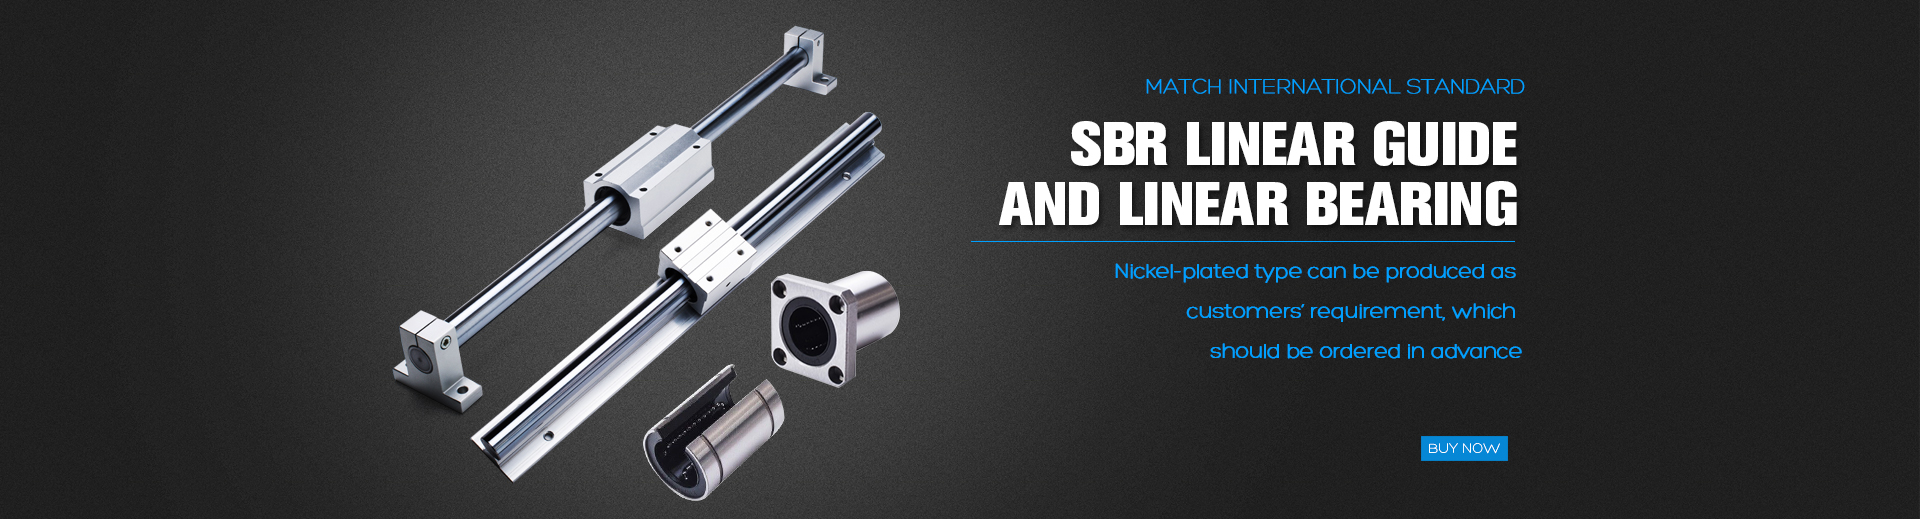 Linear Bearing and SBR rails